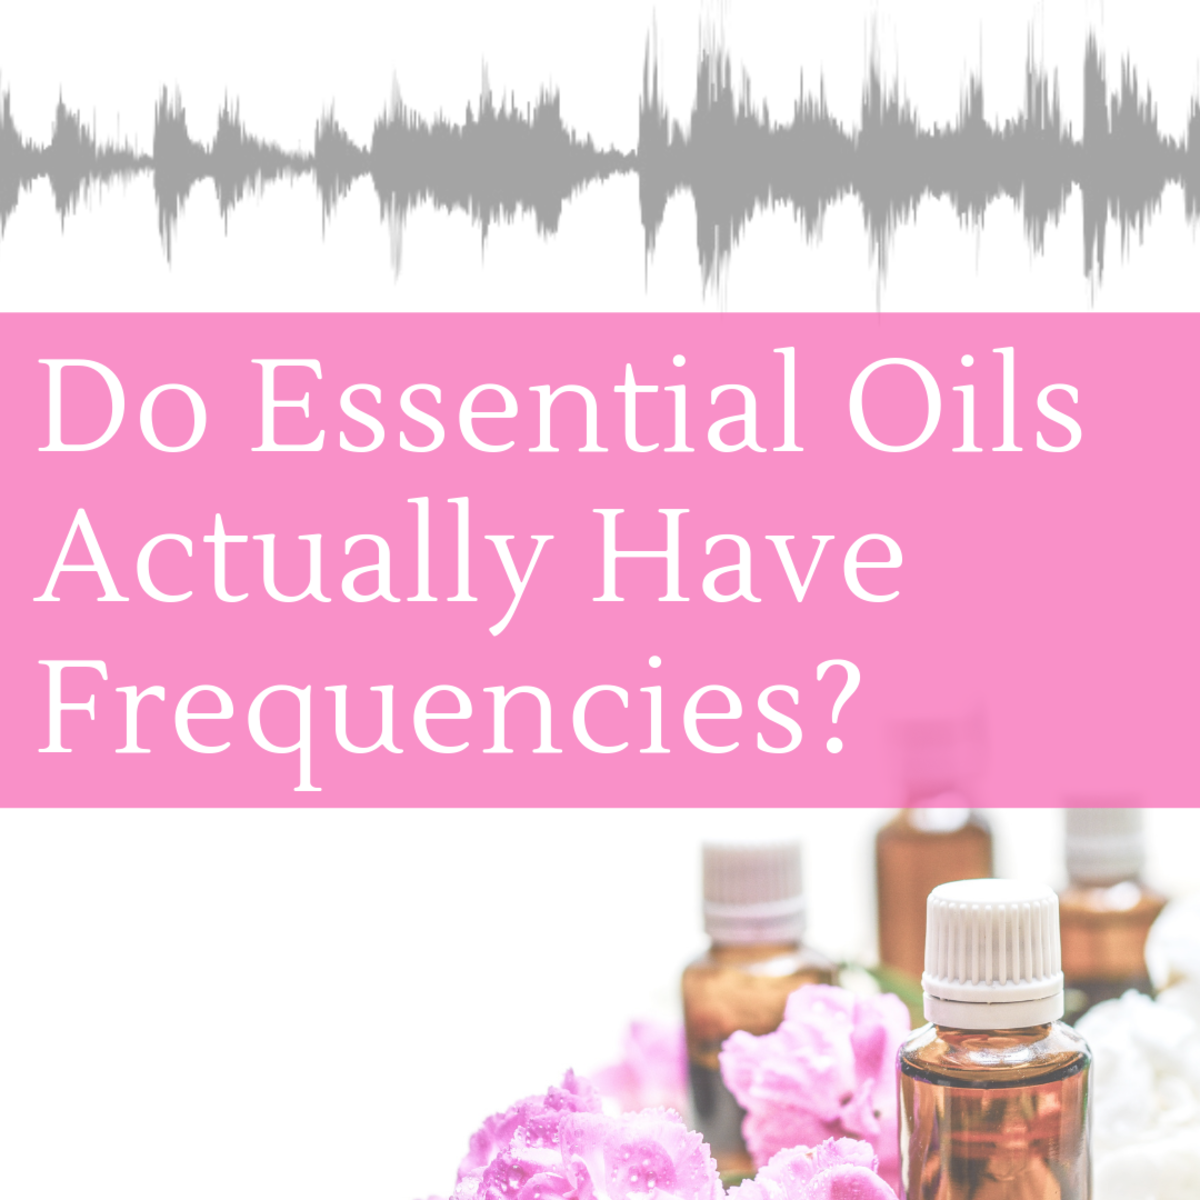 Essential Oils and Frequencies: Deciphering Fact and Fiction